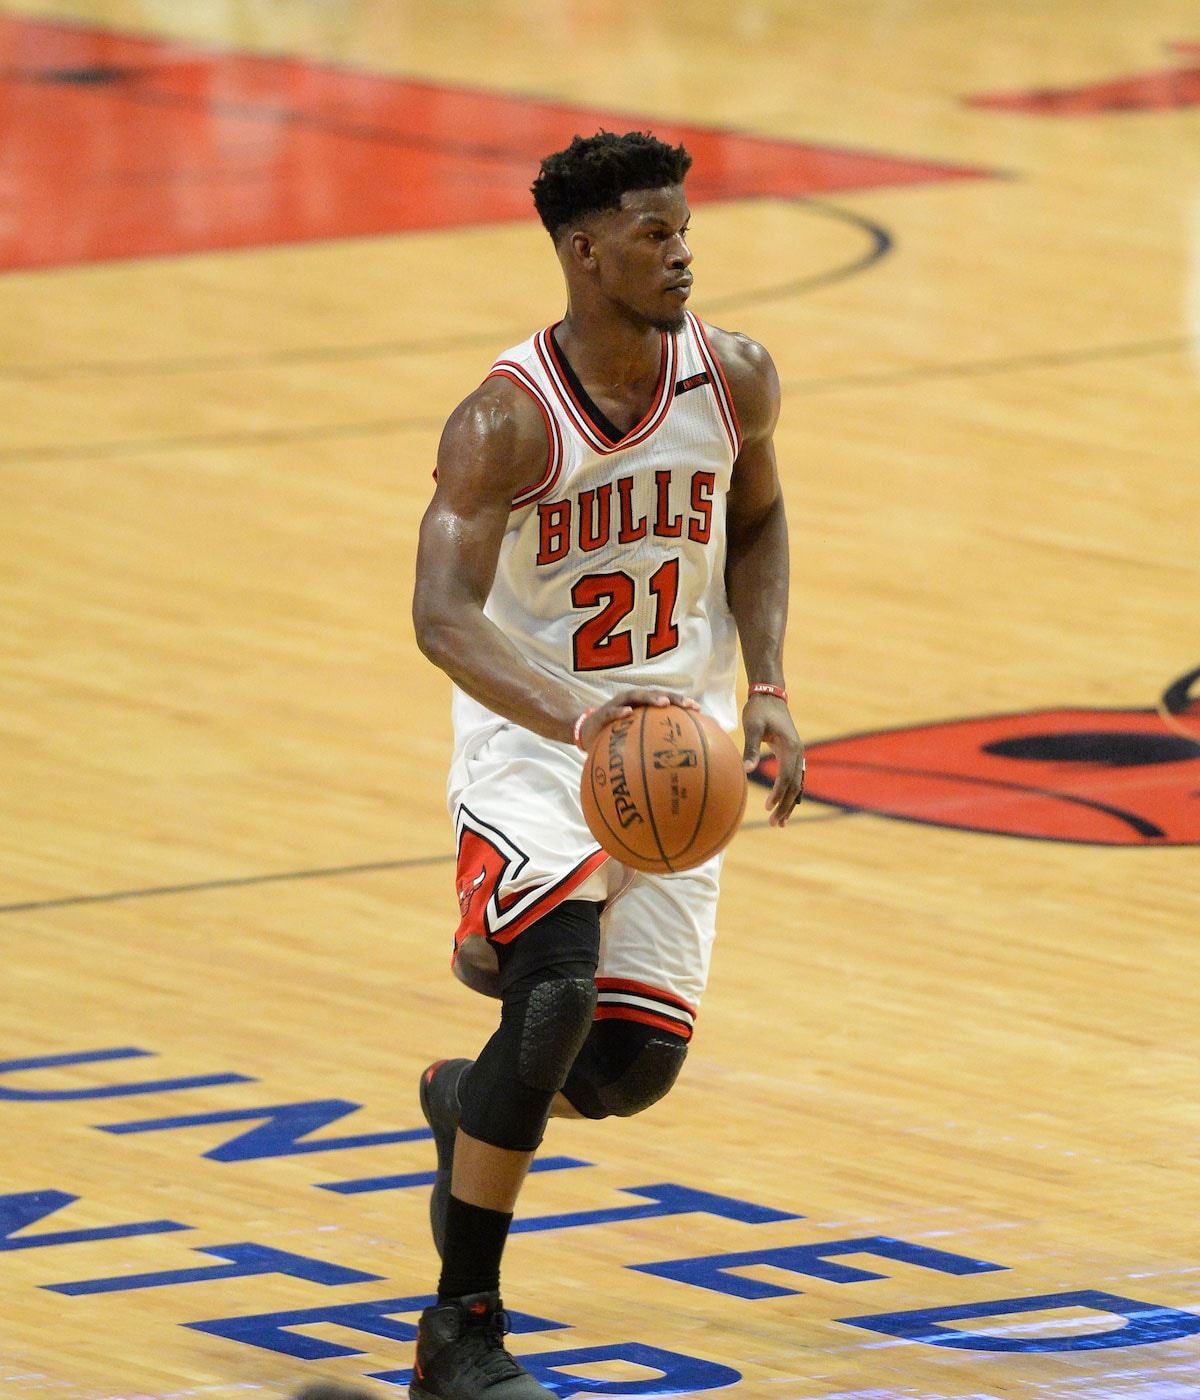 Jimmy Butler #21 of the Chicago Bulls handles the ball.